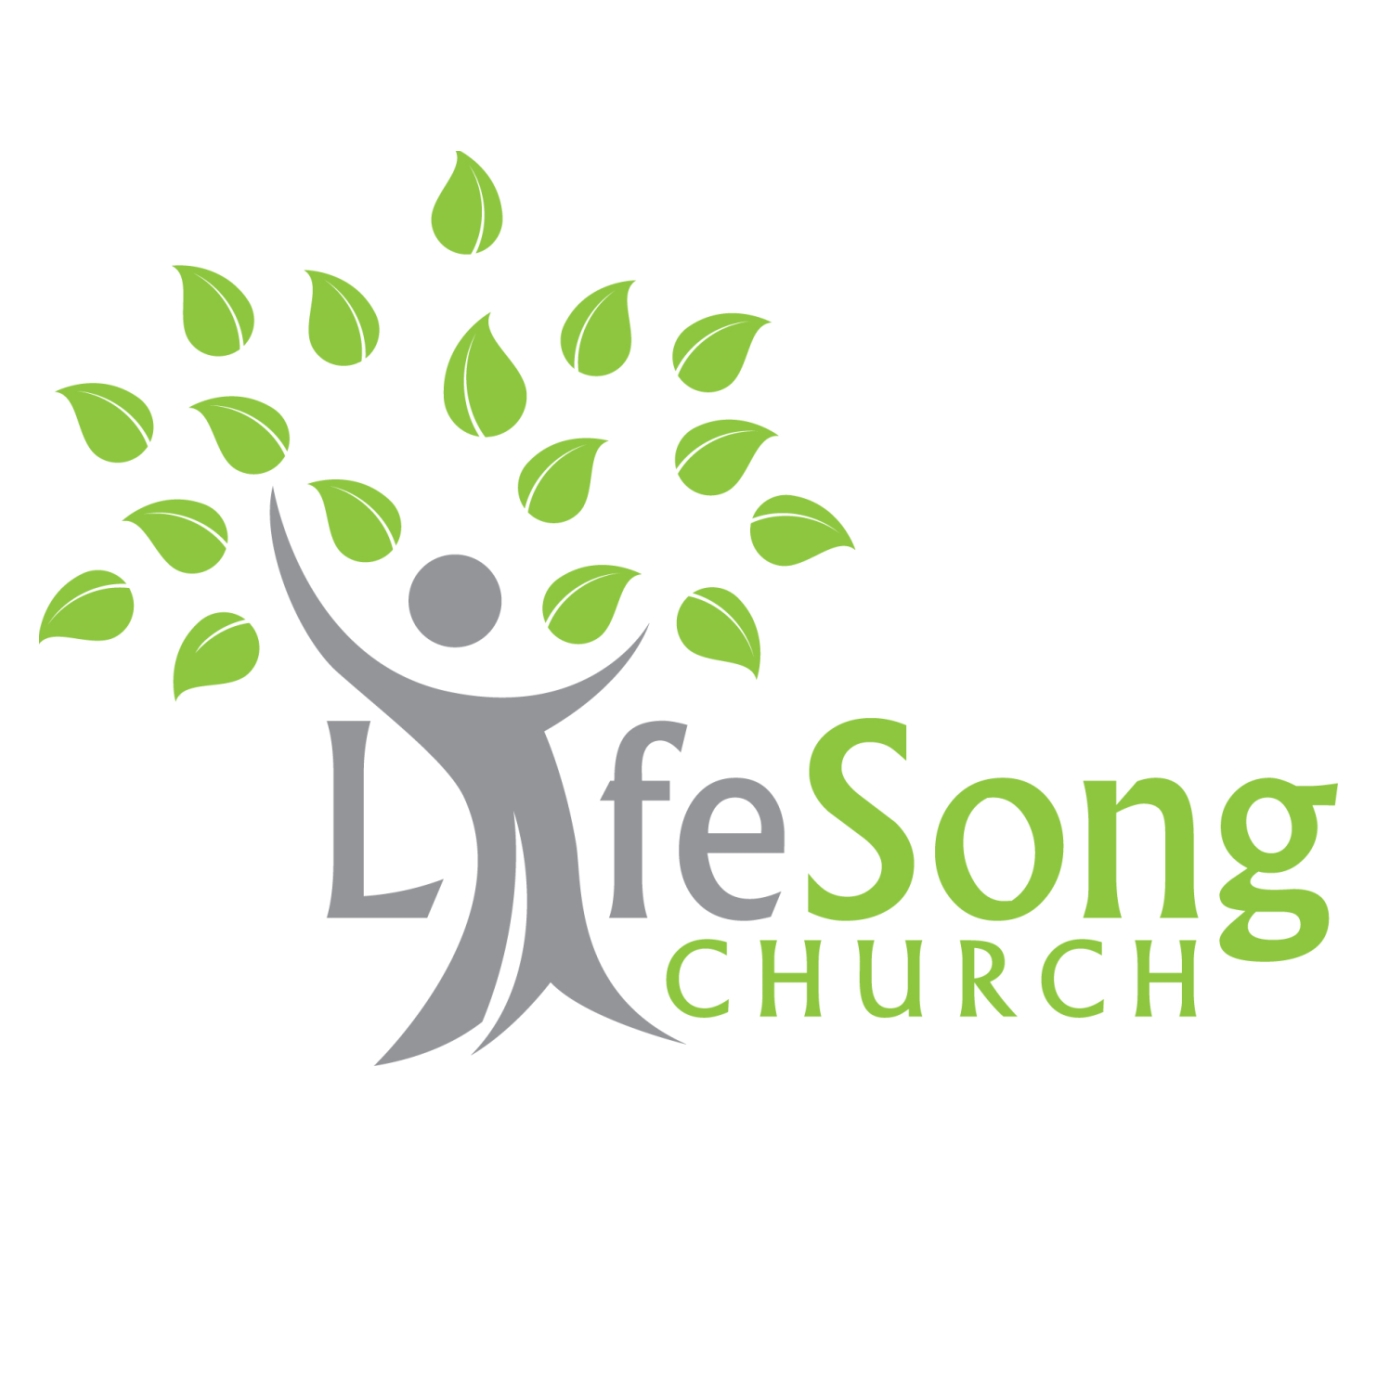 LifeSong Church Monticello